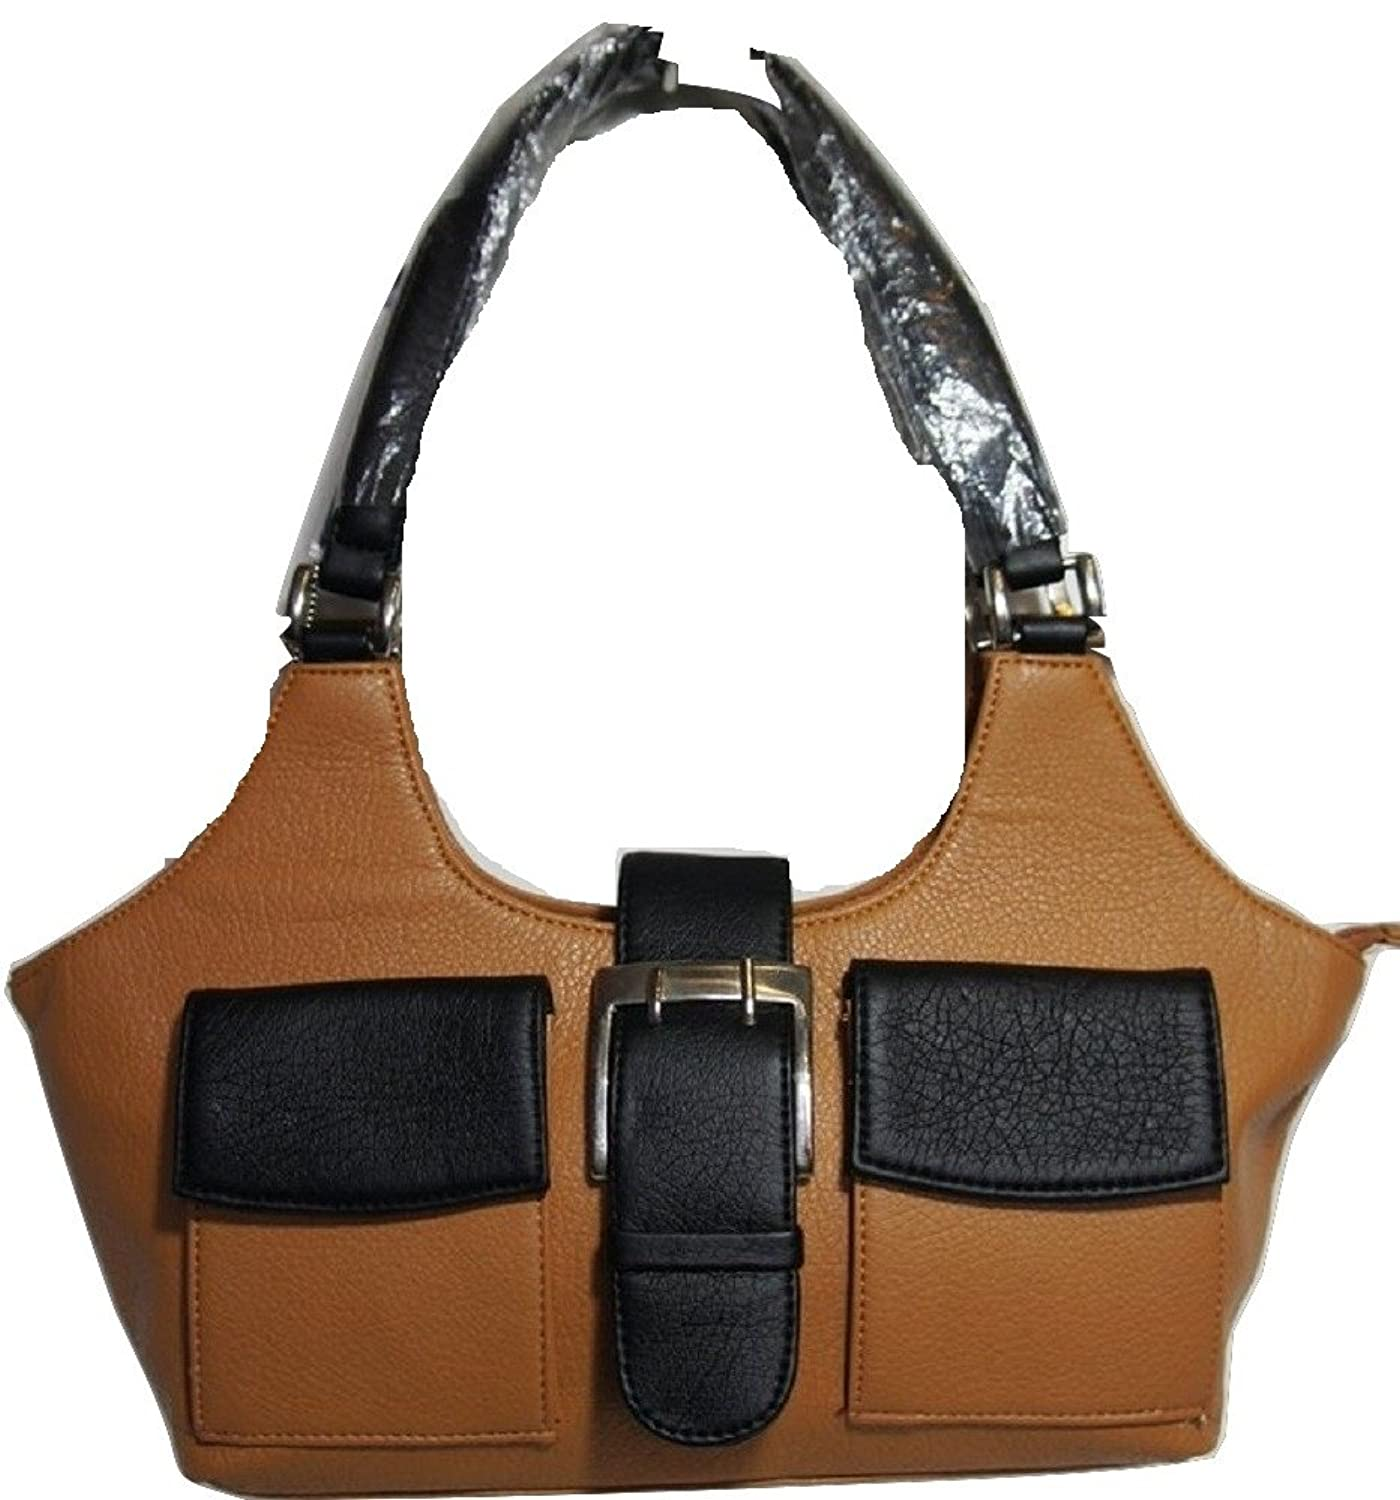 ANR Tan Brown & Black Small 2 Front Pocket Handbag / Shoulder Bag